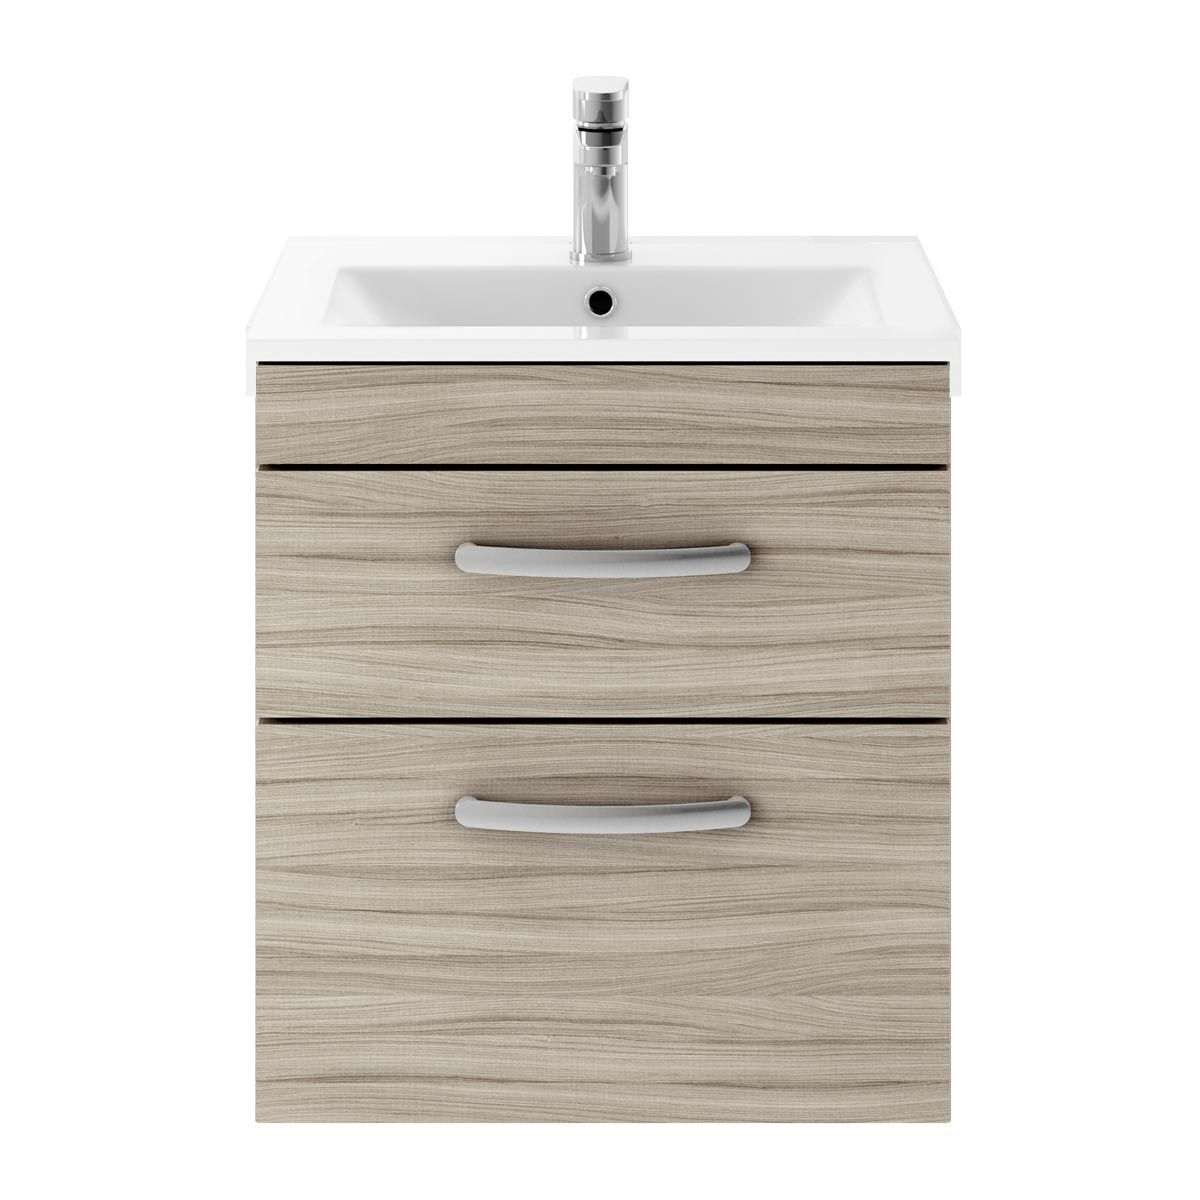 Nuie Athena Driftwood 2 Drawer Wall Hung Vanity Unit with 18mm Profile Basin 500mm